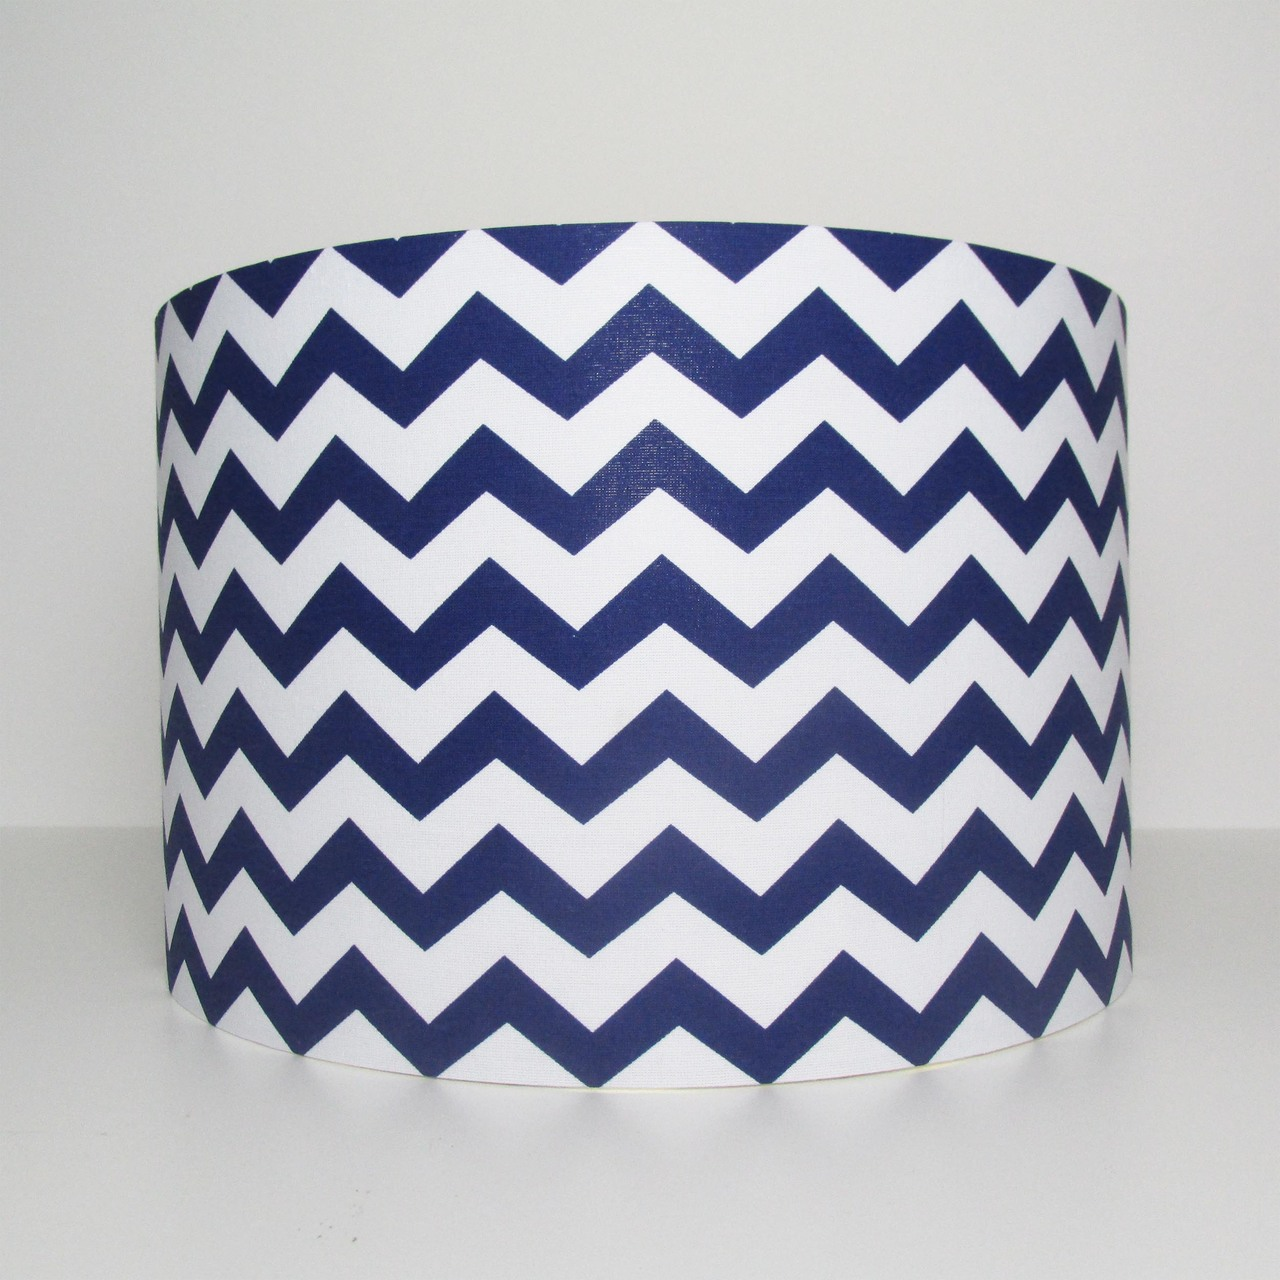 Navy Blue Chevrons Lampshade with Zig Zags